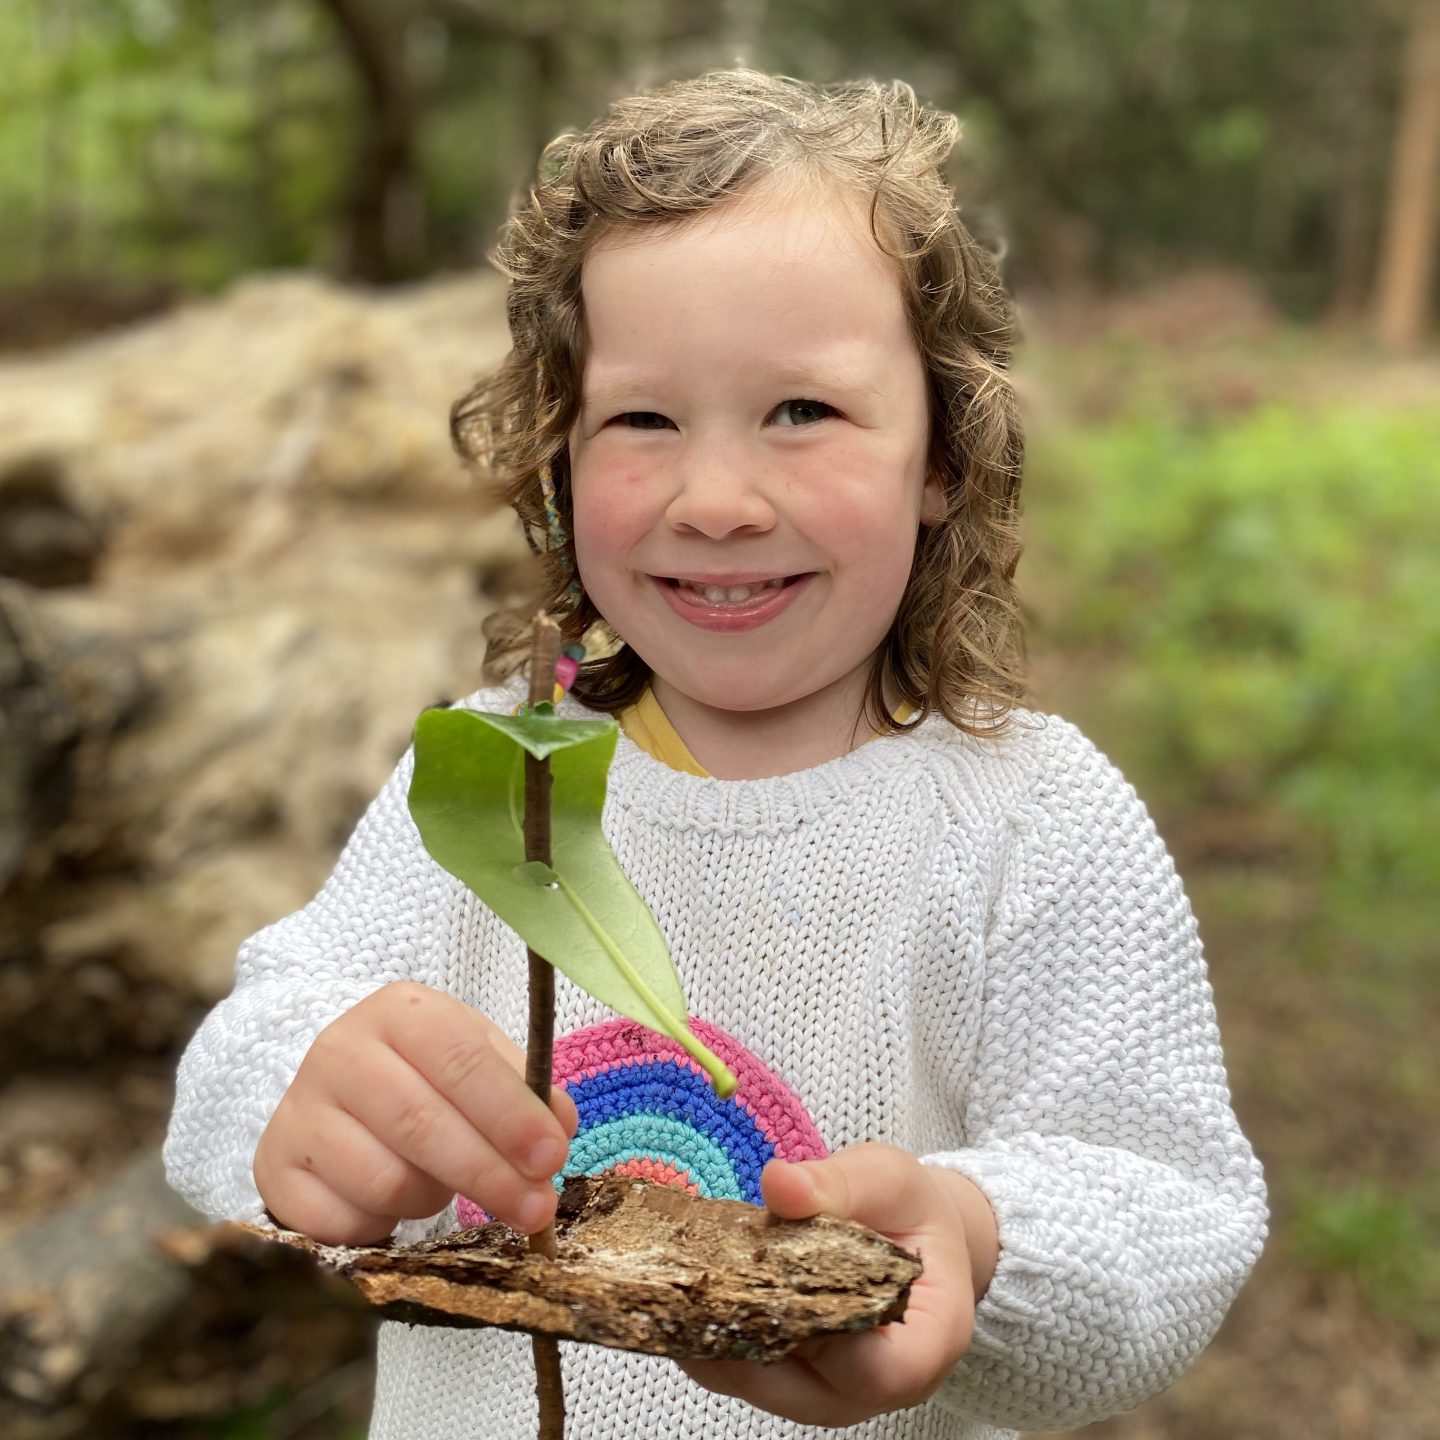 Small girl smiling with a nature boat of leaves and twigs